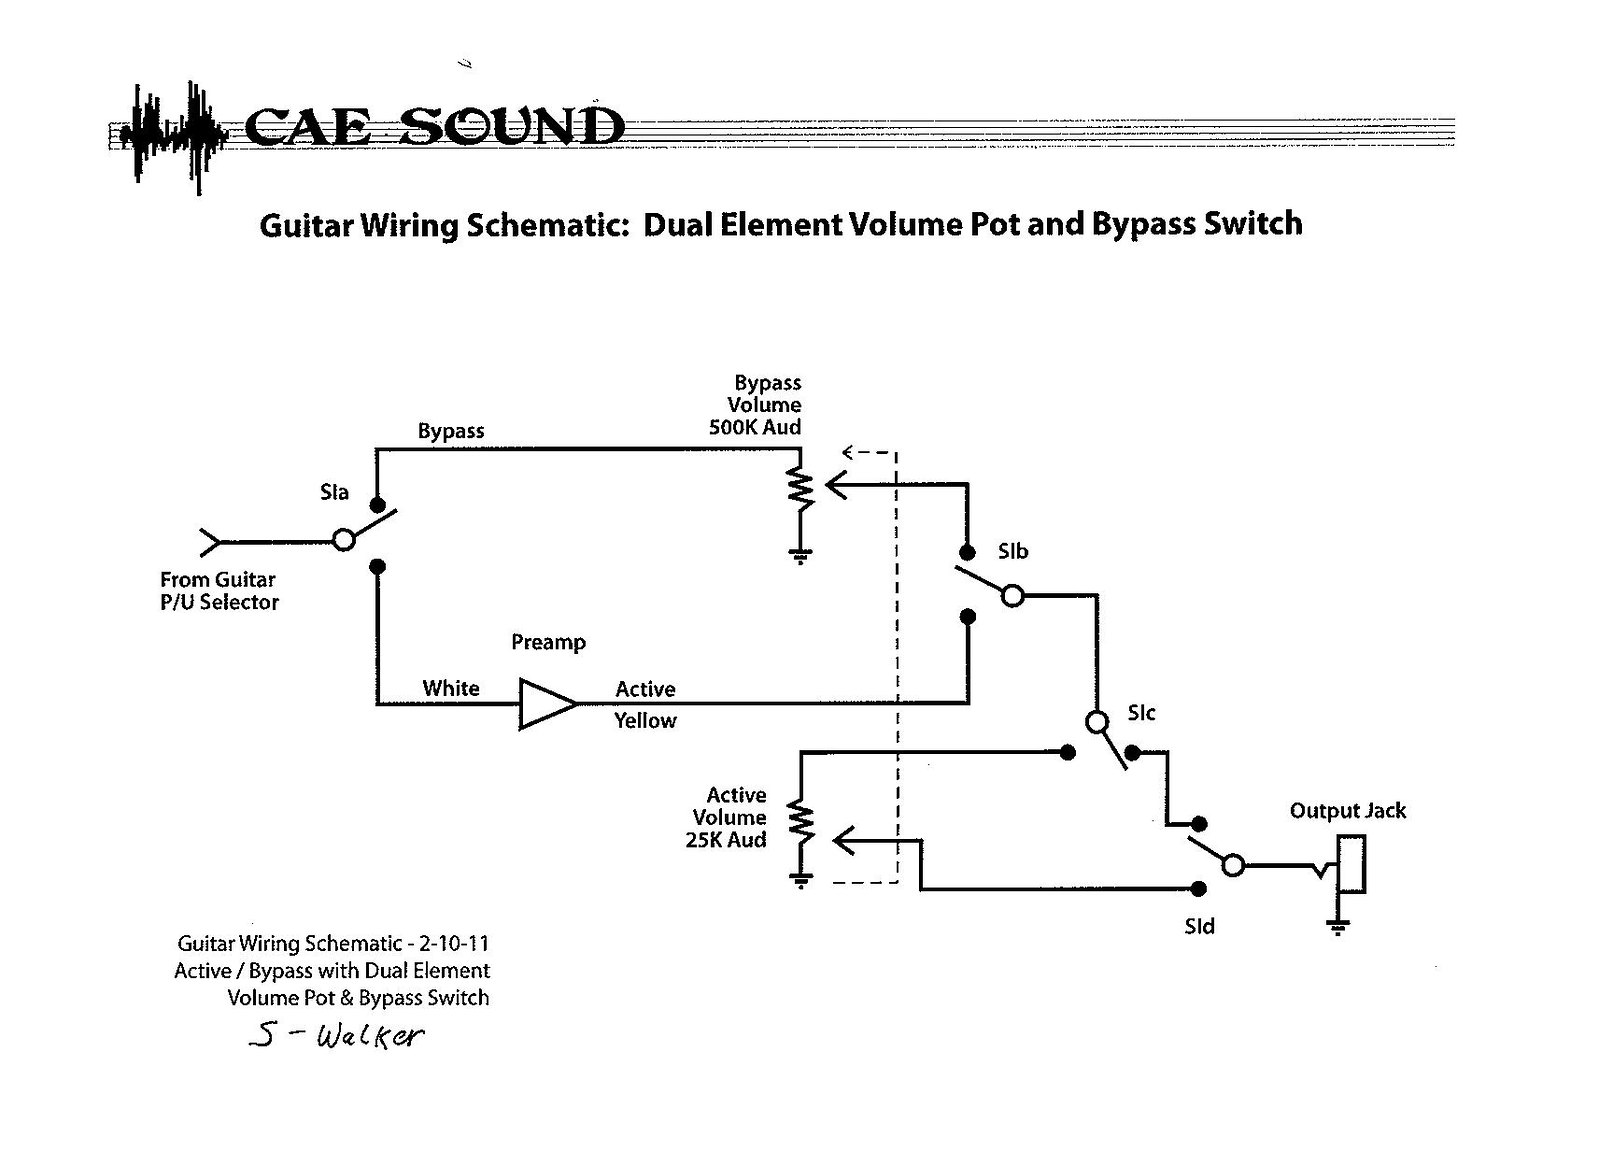 gibson guitar wiring diagrams network routing diagram schematic help the gear page